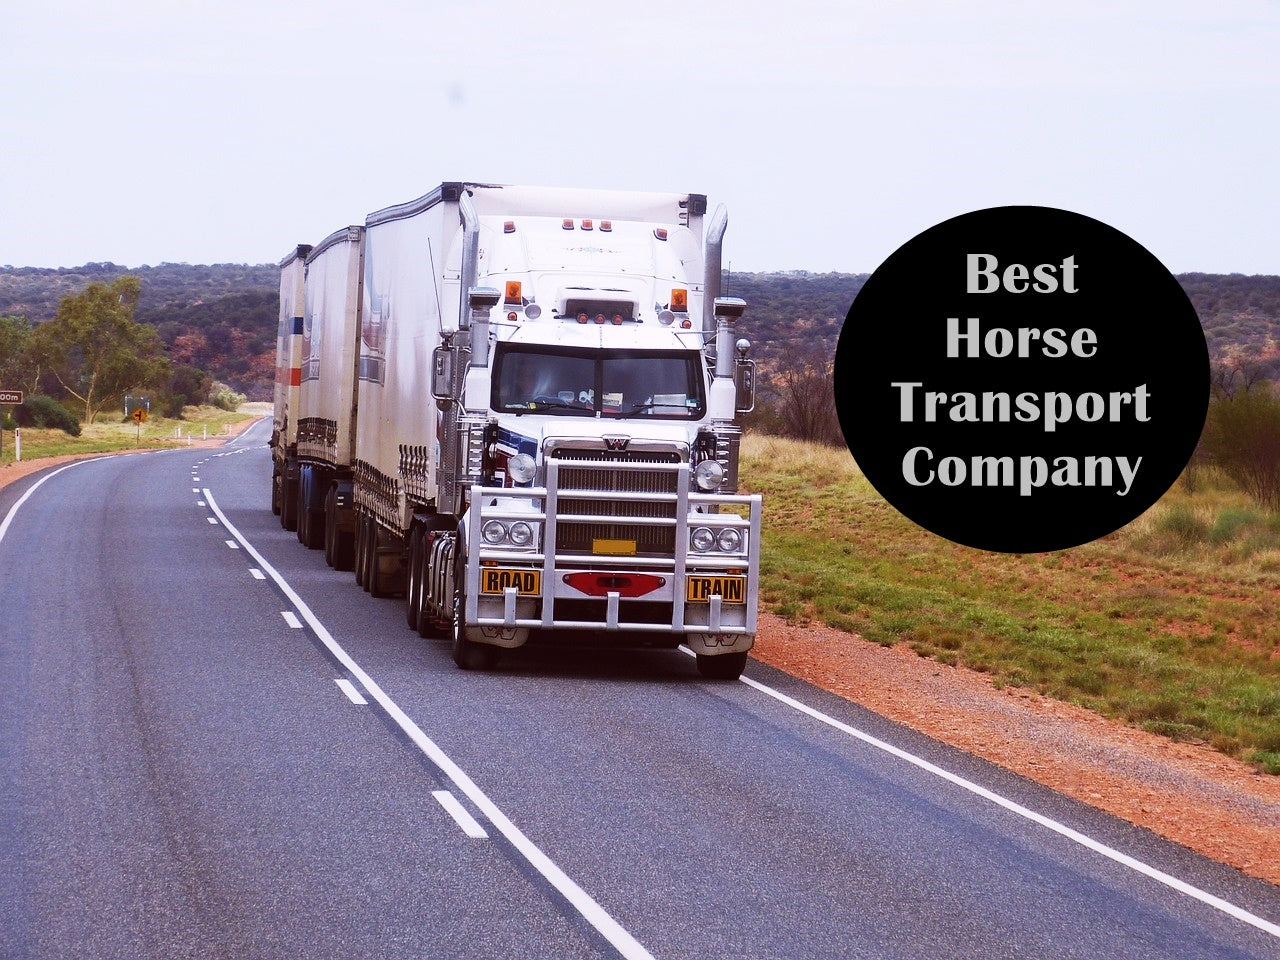 The Champions Horse Transport